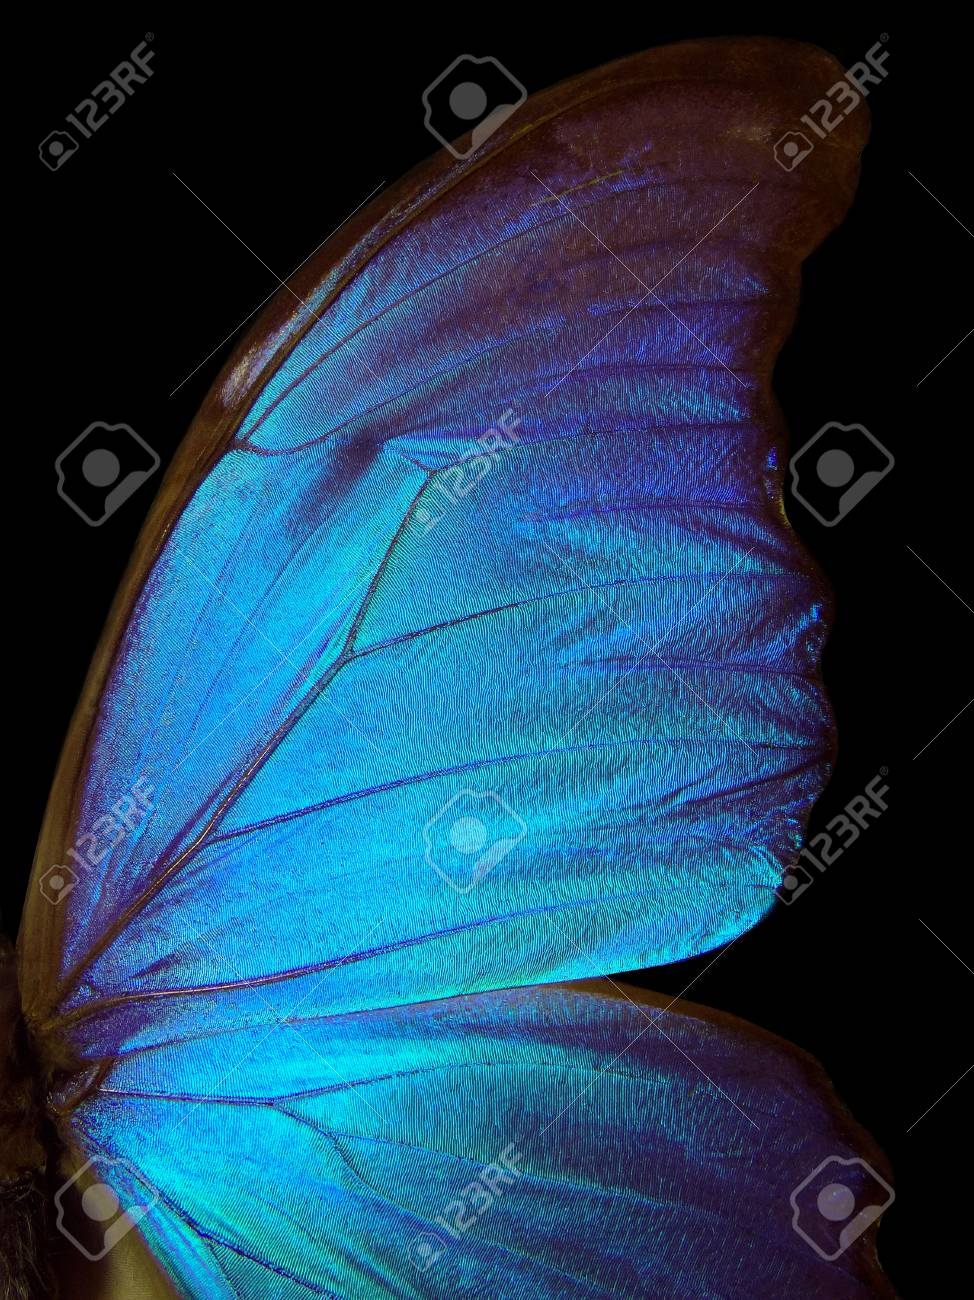 Wings of a butterfly Morpho texture background  Morpho butterfly